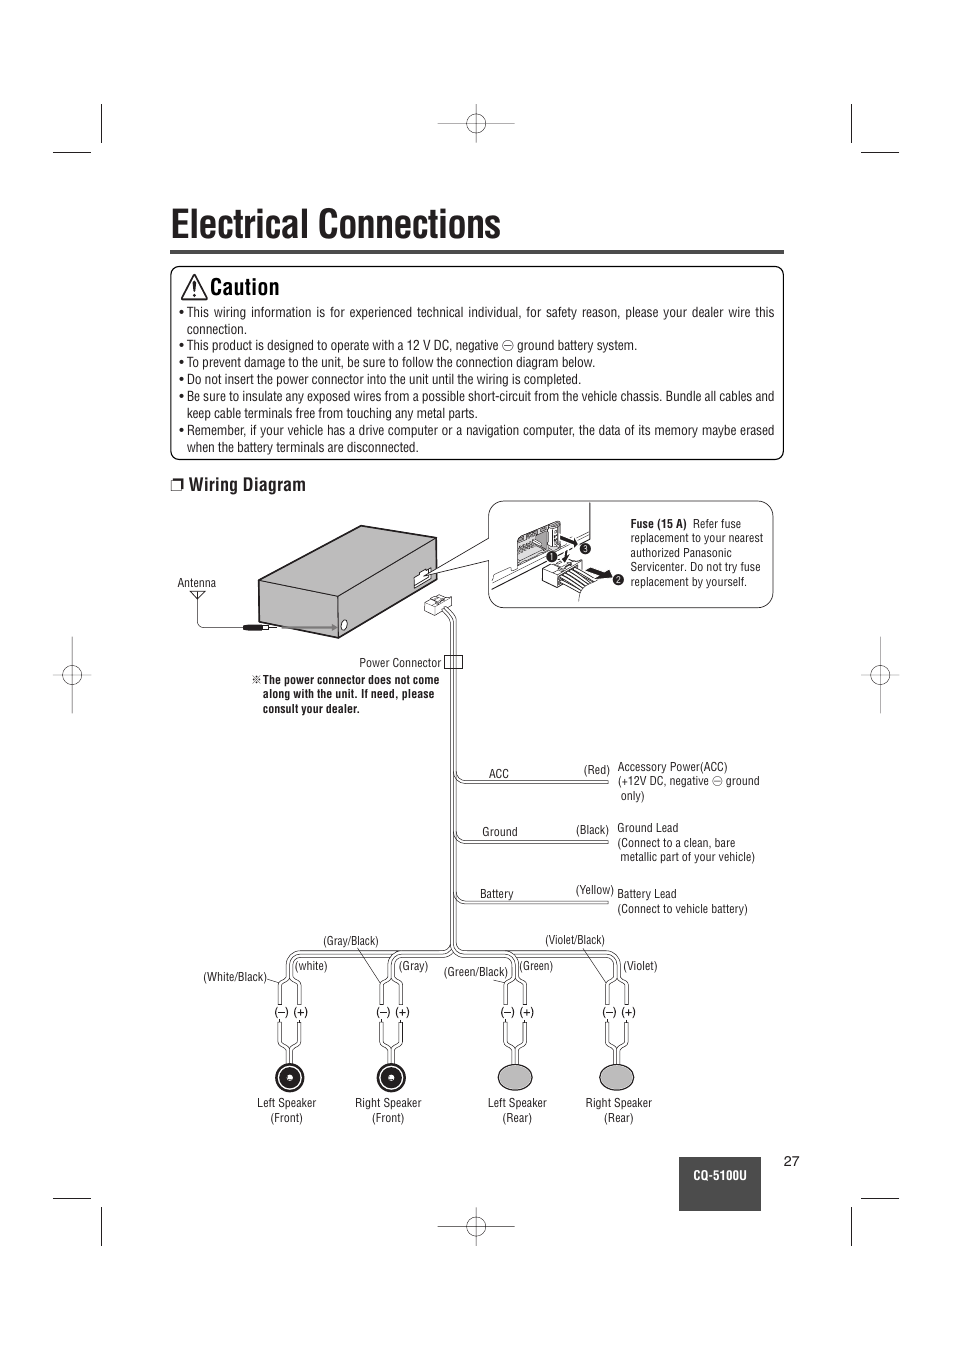 Electrical Connections  Caution  Wiring Diagram